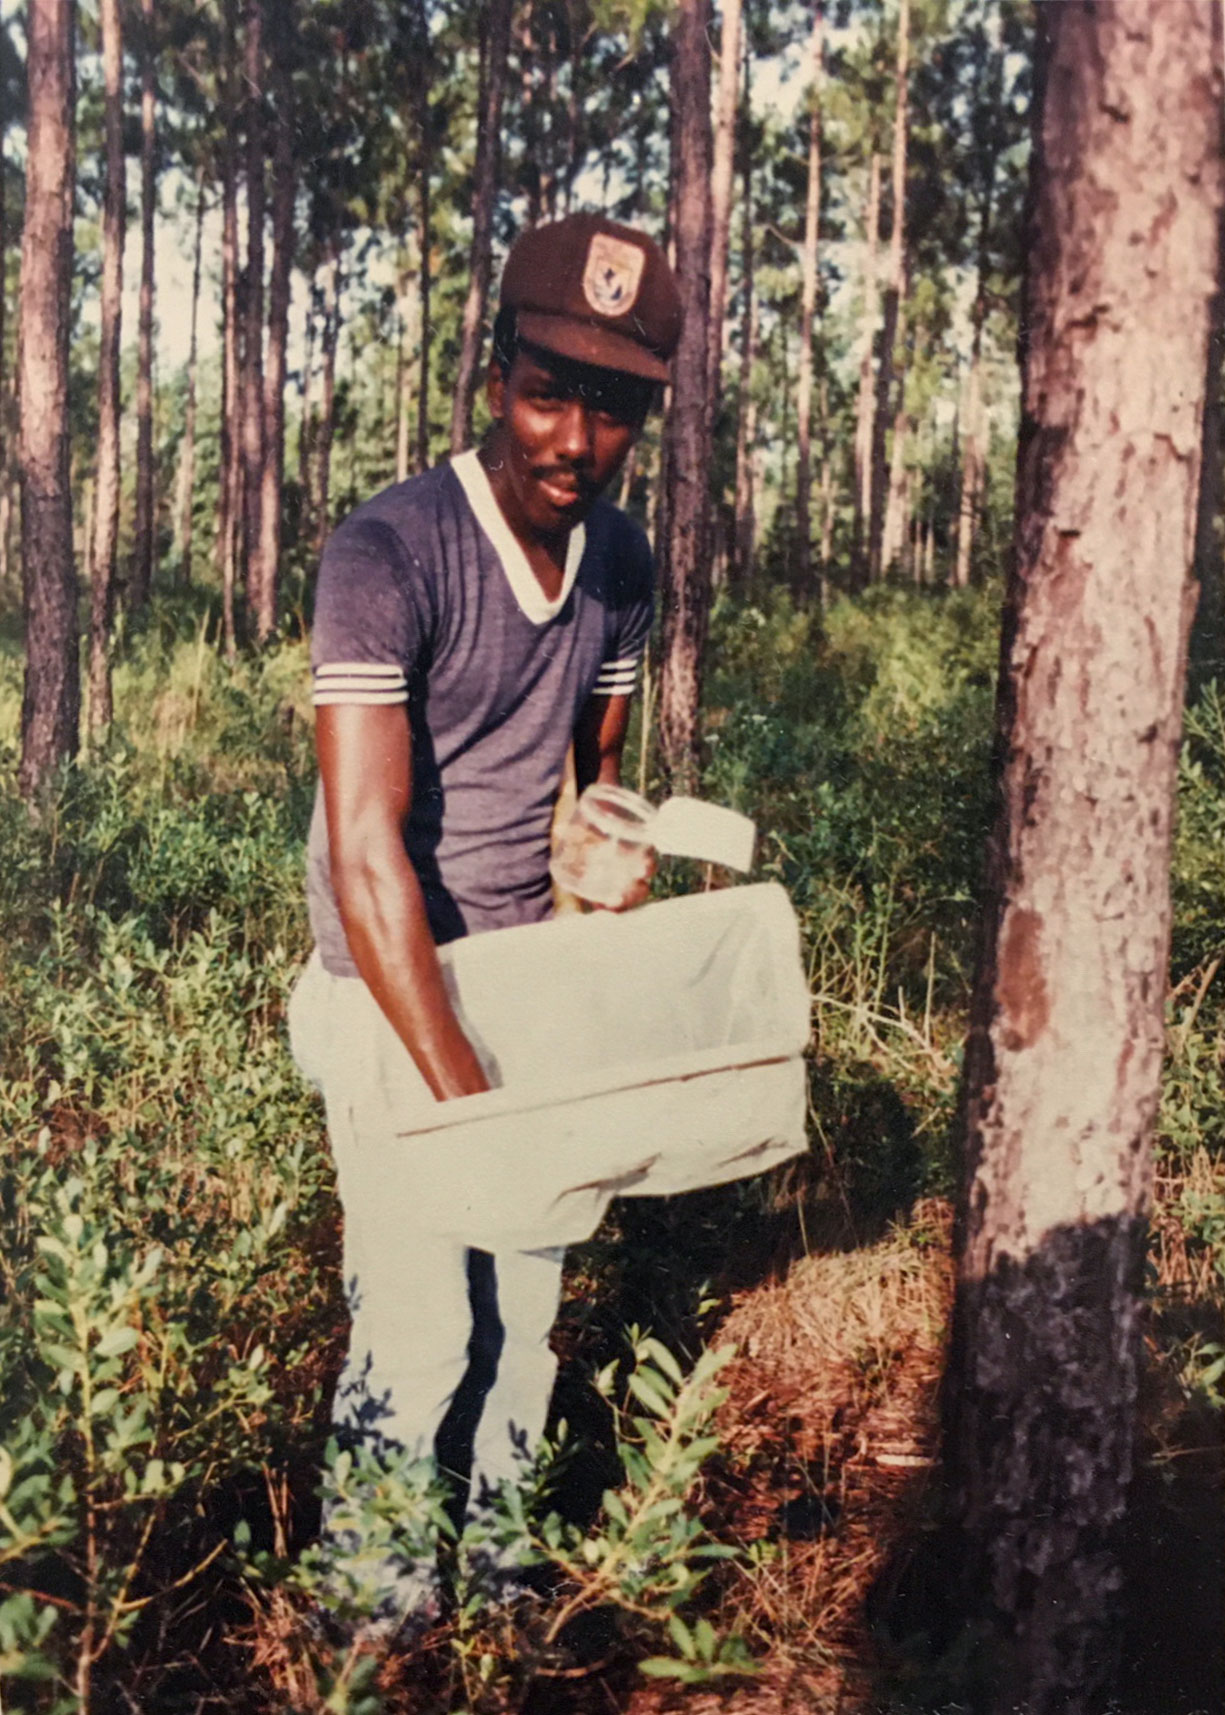 Jerome Ford assisting with insect collection while studying at Grambling State University. Courtesy of  U.S. Fish and Wildlife Service